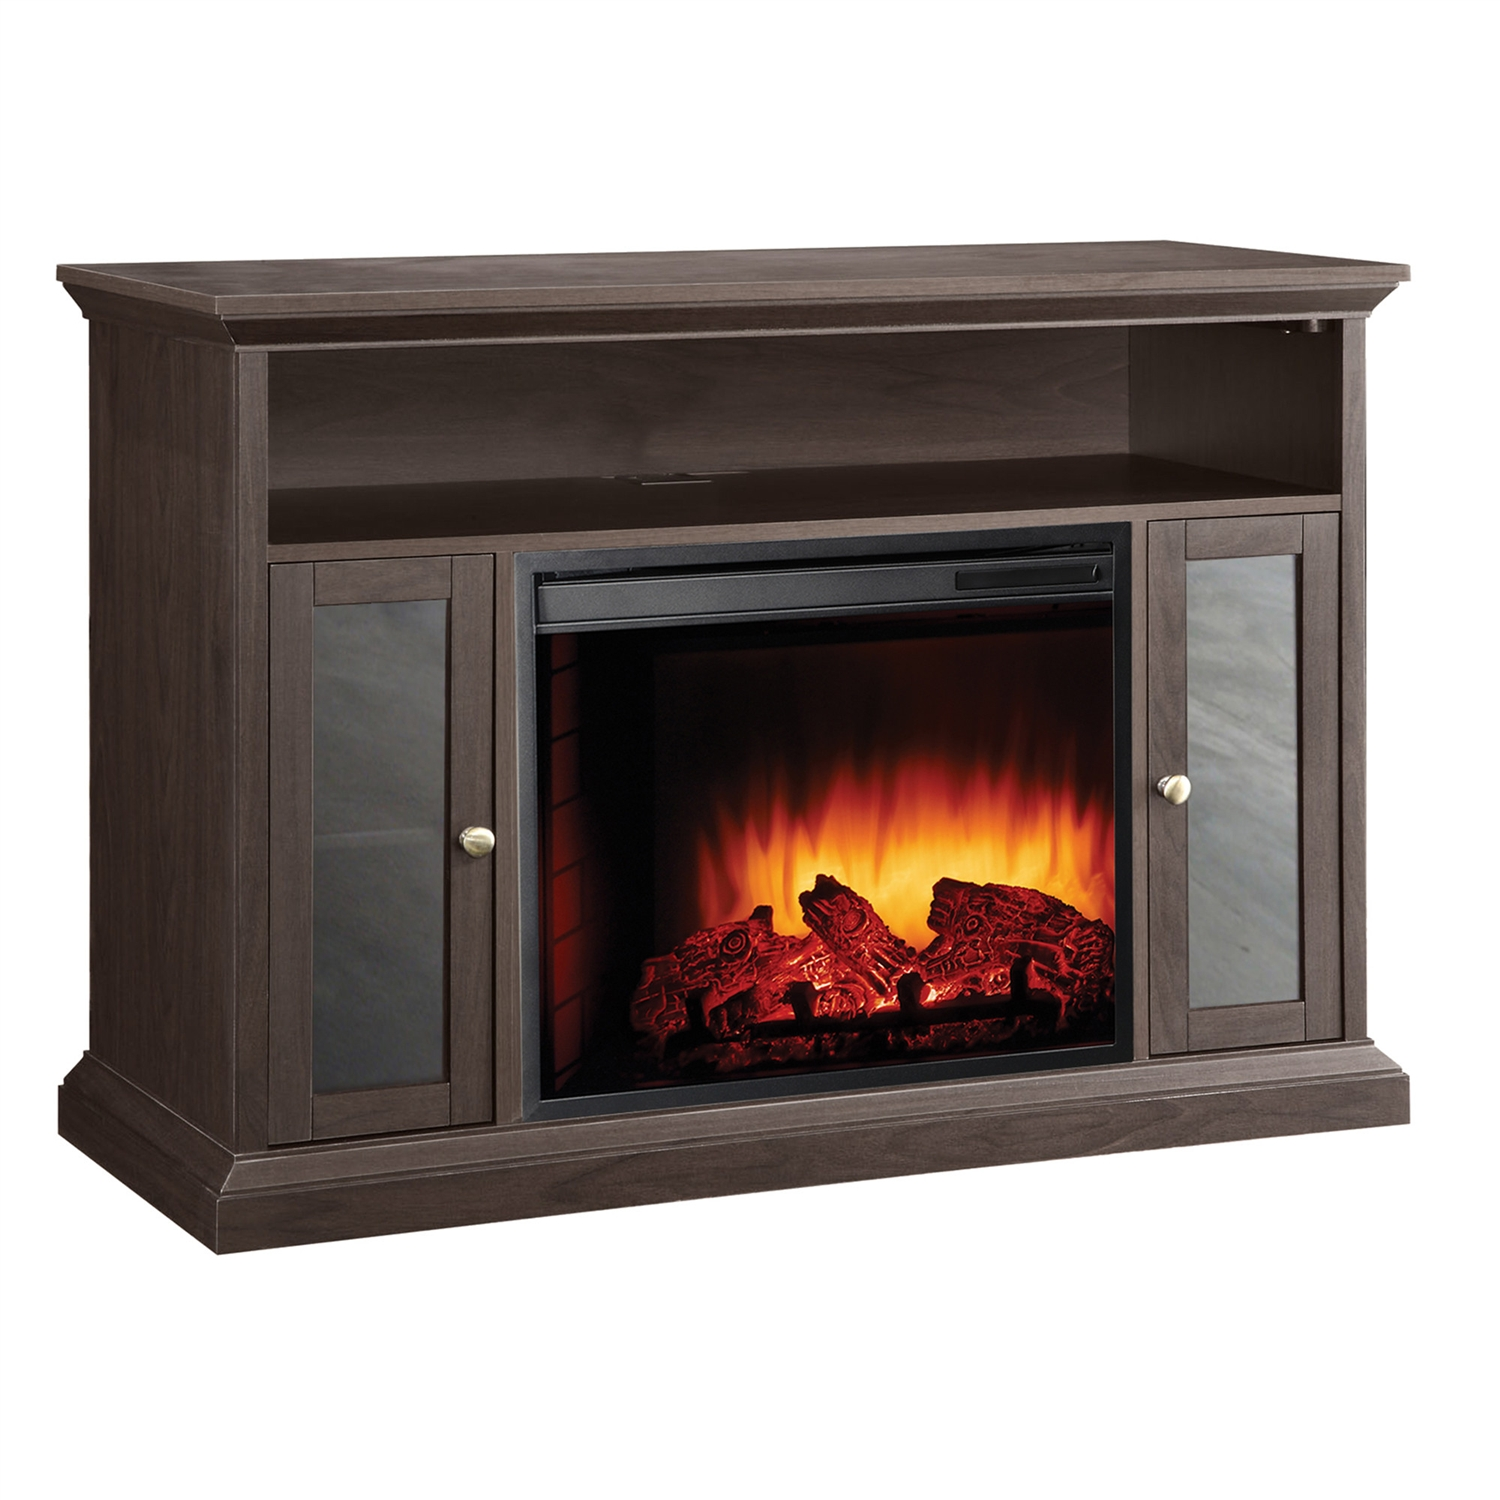 """Electric Fireplace Space Heater TV Stand 13500 Watt, PHMCF470523 :  This Electric Fireplace Space Heater TV Stand 13500 Watt is the ideal solution for warmth, ambiance and an updated decor in lofts, apartments, living rooms, basements and other areas of your home or office. Constructed from solid wood with a beautiful espresso finish, this easy to assemble unit has a fireplace and media center dual-functionality to provide storage shelves, a mantle to hold up to a 48-inch flat panel TV, heat and a glowing log atmosphere without the mess and hassle that come from traditional fireplaces. The 23"""" firebox uses energy efficient LEDs to provide the fire effect and features (3) realistic flame settings, (10) heat temperature settings and a randomly glowing ember bed that can be adjusted by the included multi-functional remote control. The 4,600-BTU, 1,350-watt fan-forced air heater will warm a room up to 400-square feet in size without the need for venting or construction. A temperature display with LCD digital controls and (10) different timer settings are also located on the panel. The media cabinet features over 46-inches of mantle space, 7"""" high media shelf and (2) glass door side cabinets with adjustable shelving. The cabinet and fireplace can be operated with or without the heater, uses green electric power from any standard outlet and can reduce your monthly energy costs. The cabinet is designed for """"screwdriver only"""" easy assembly and has a cord management channel. This stunning focal point will fit any lifestyle and provide the family and friends with the flames, ambiance and warmth your room's been missing. Manufacturer provides 1 year limited warranty. Country of Manufacture: China."""